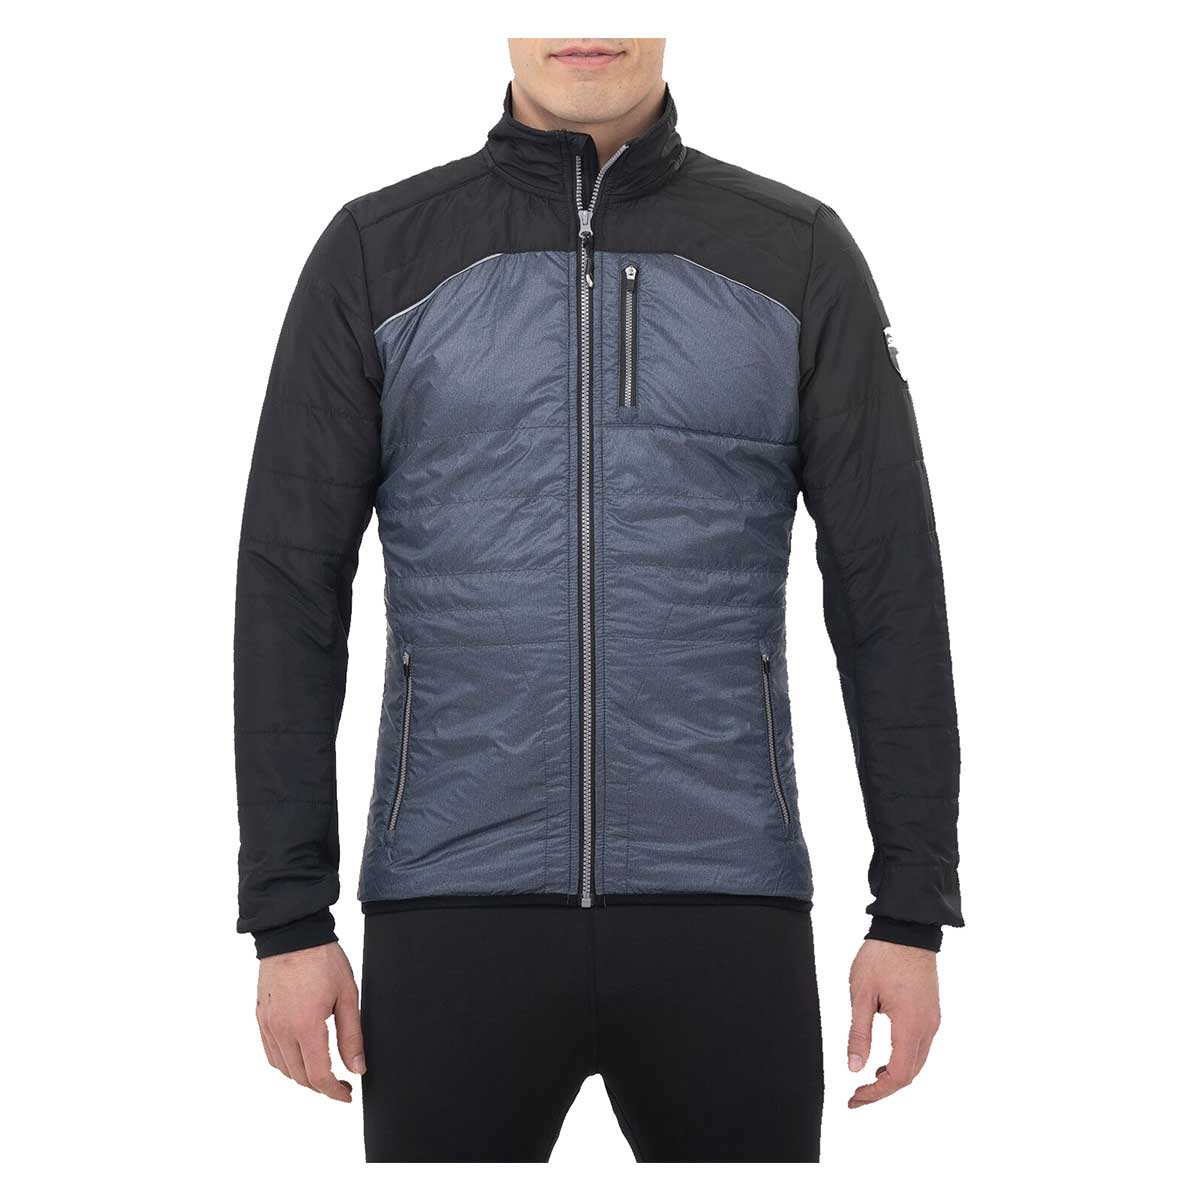 Swix Men's Menali Quilted Jacket in Heather Charcoal